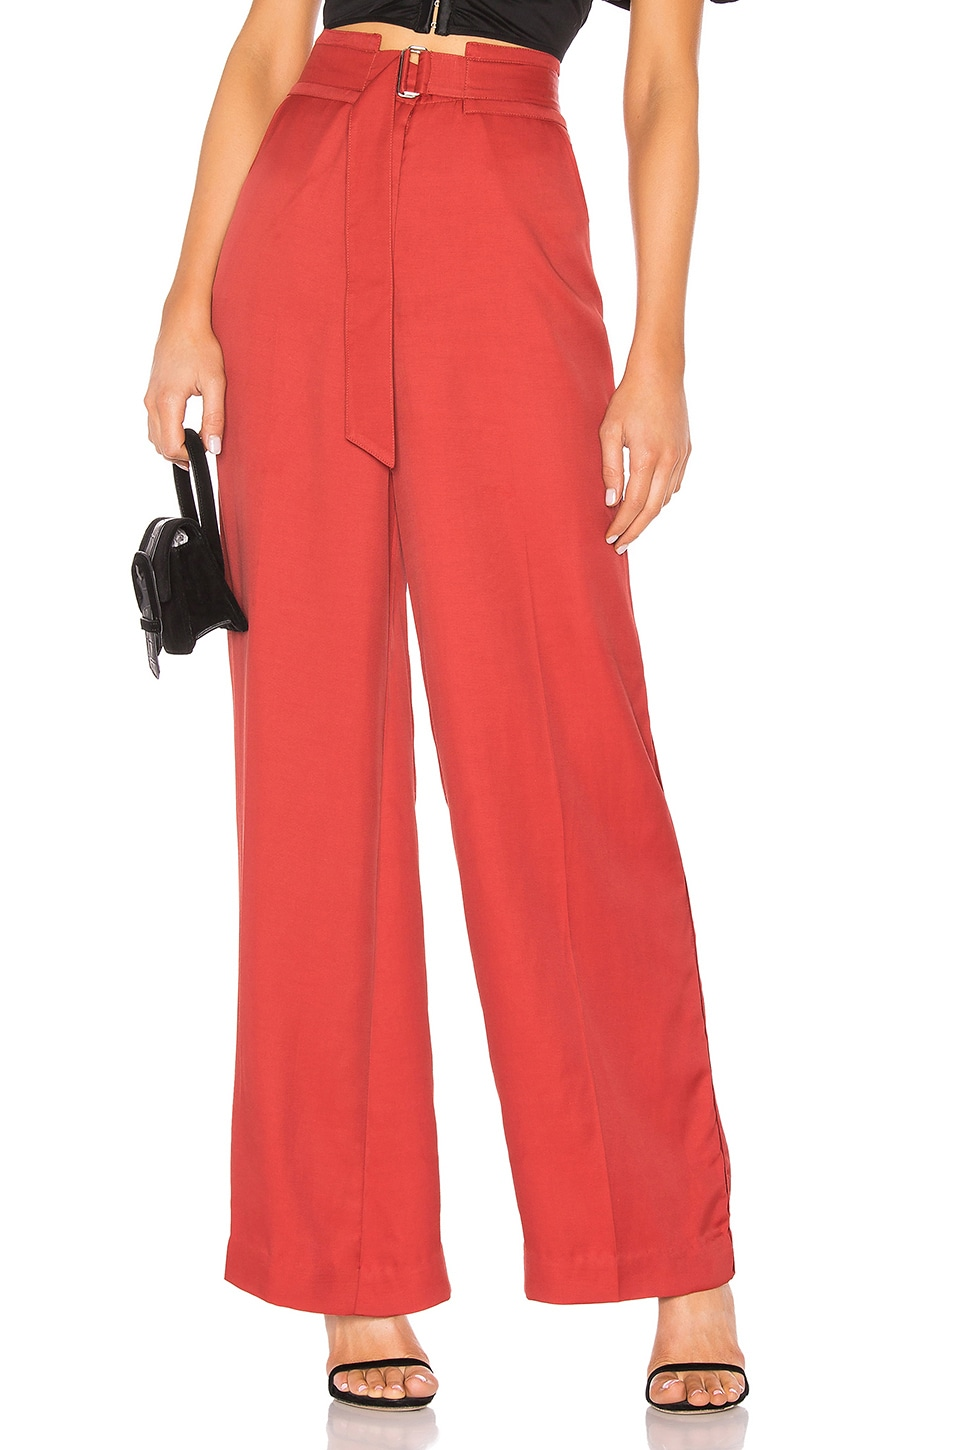 C/MEO Light Pant in Red